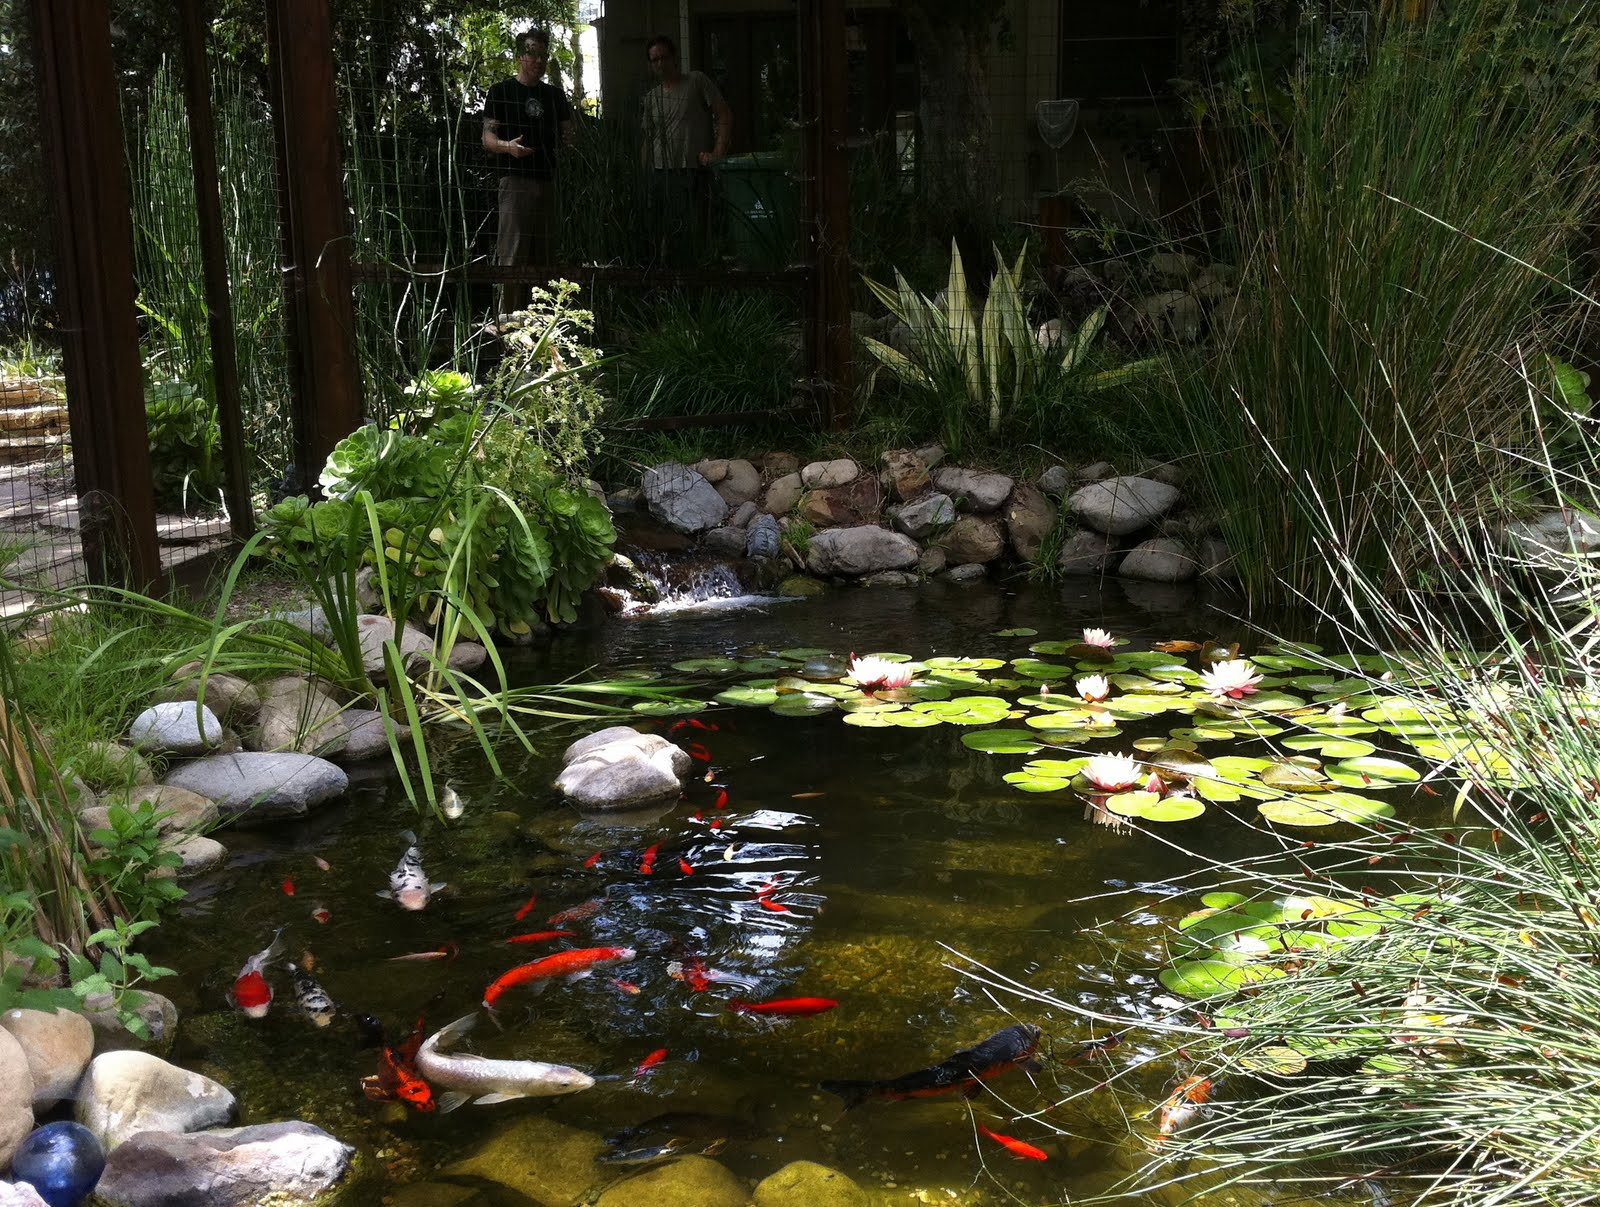 Elgin eco house garden serenity in the midst of the city for Koi pond fish